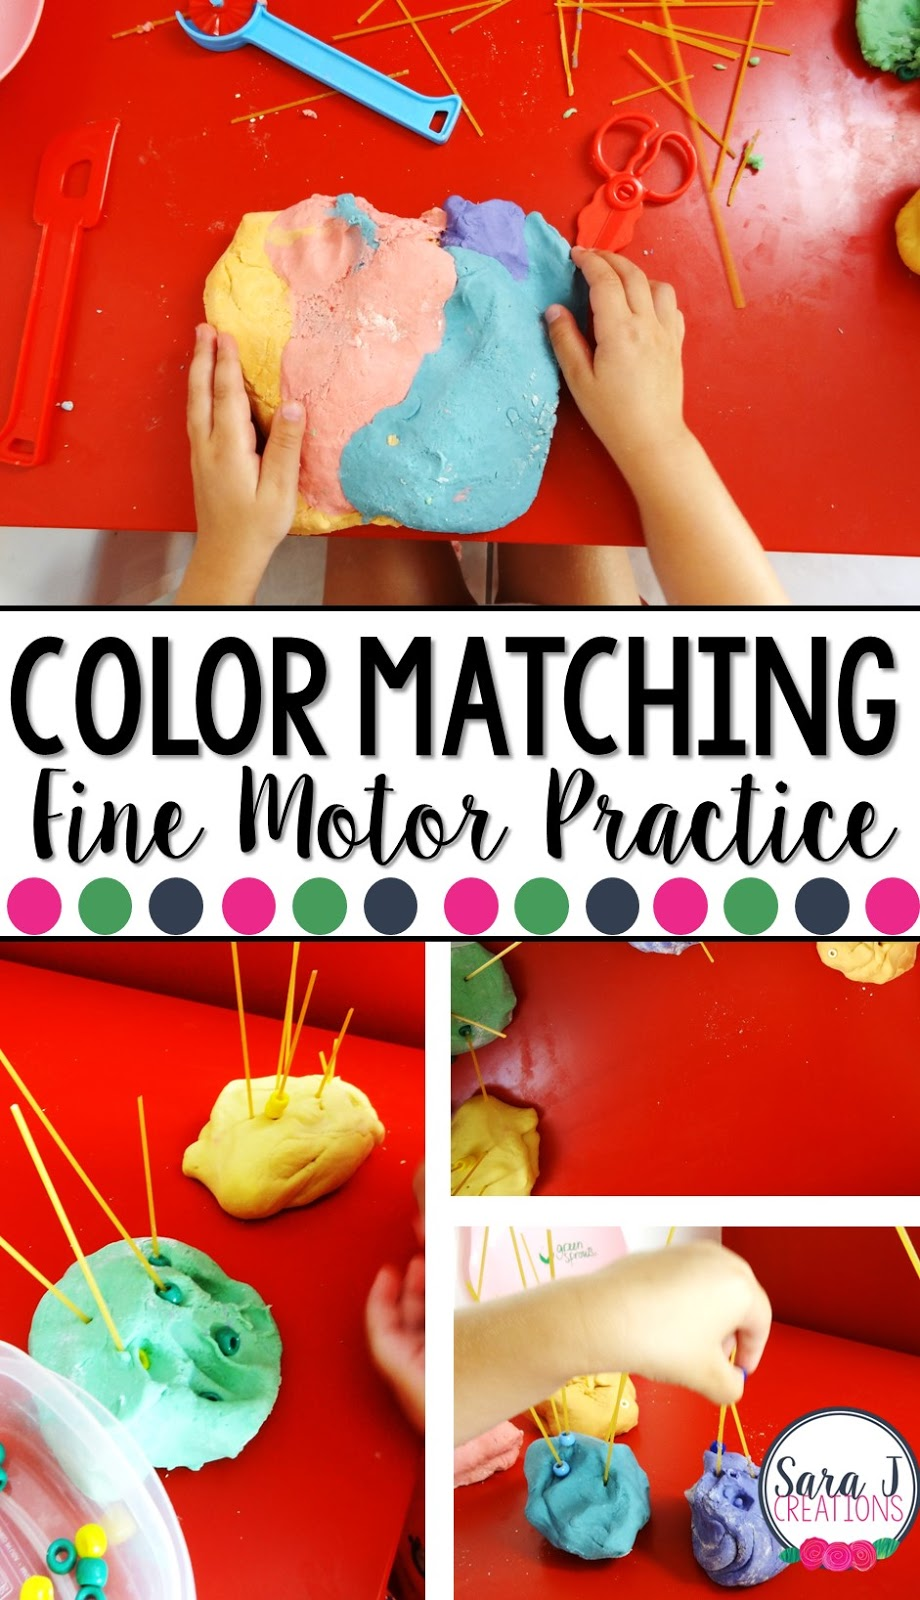 Playdough is such a fun way to practice fine motor skills and practice matching colors at the same time.  I loved this idea and we had our own spin on it.